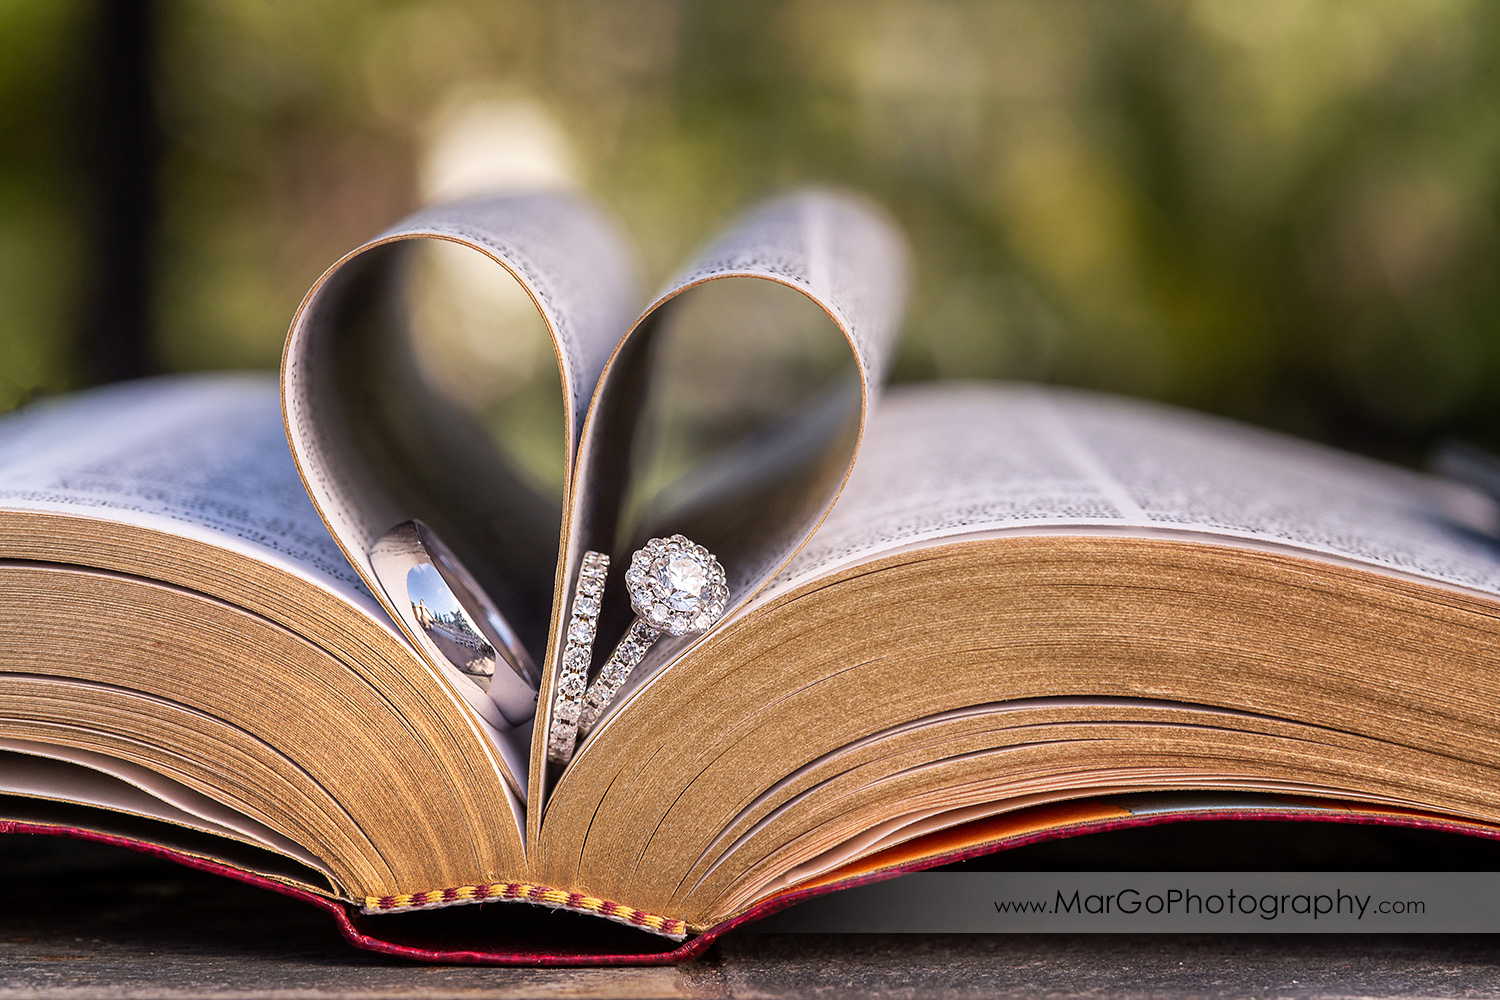 wedding rings in Bible heart shape pages